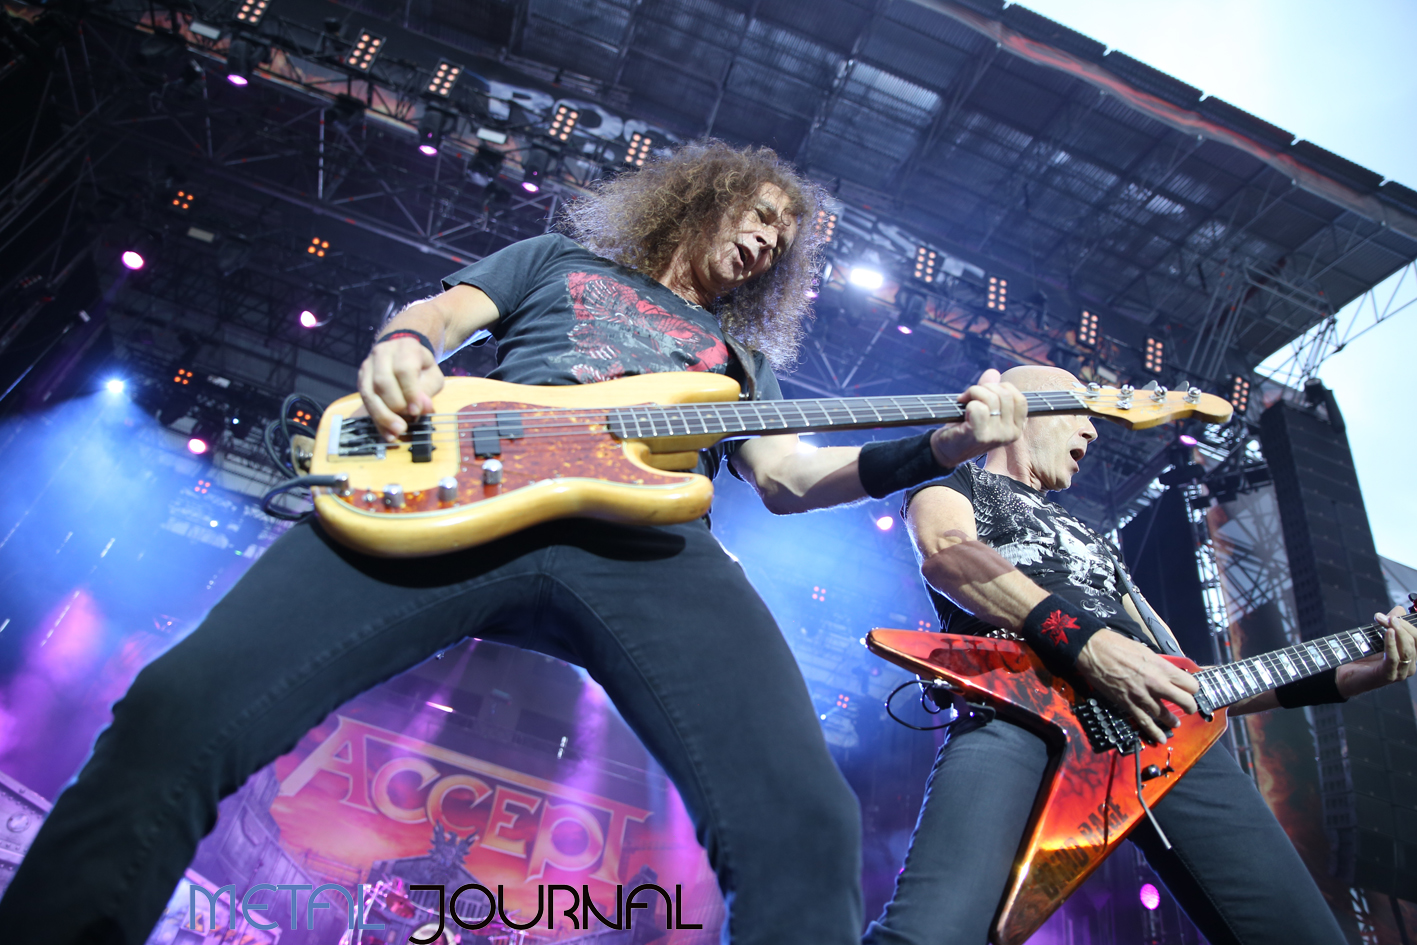 accept rock fest 18 - metal journal pic 6